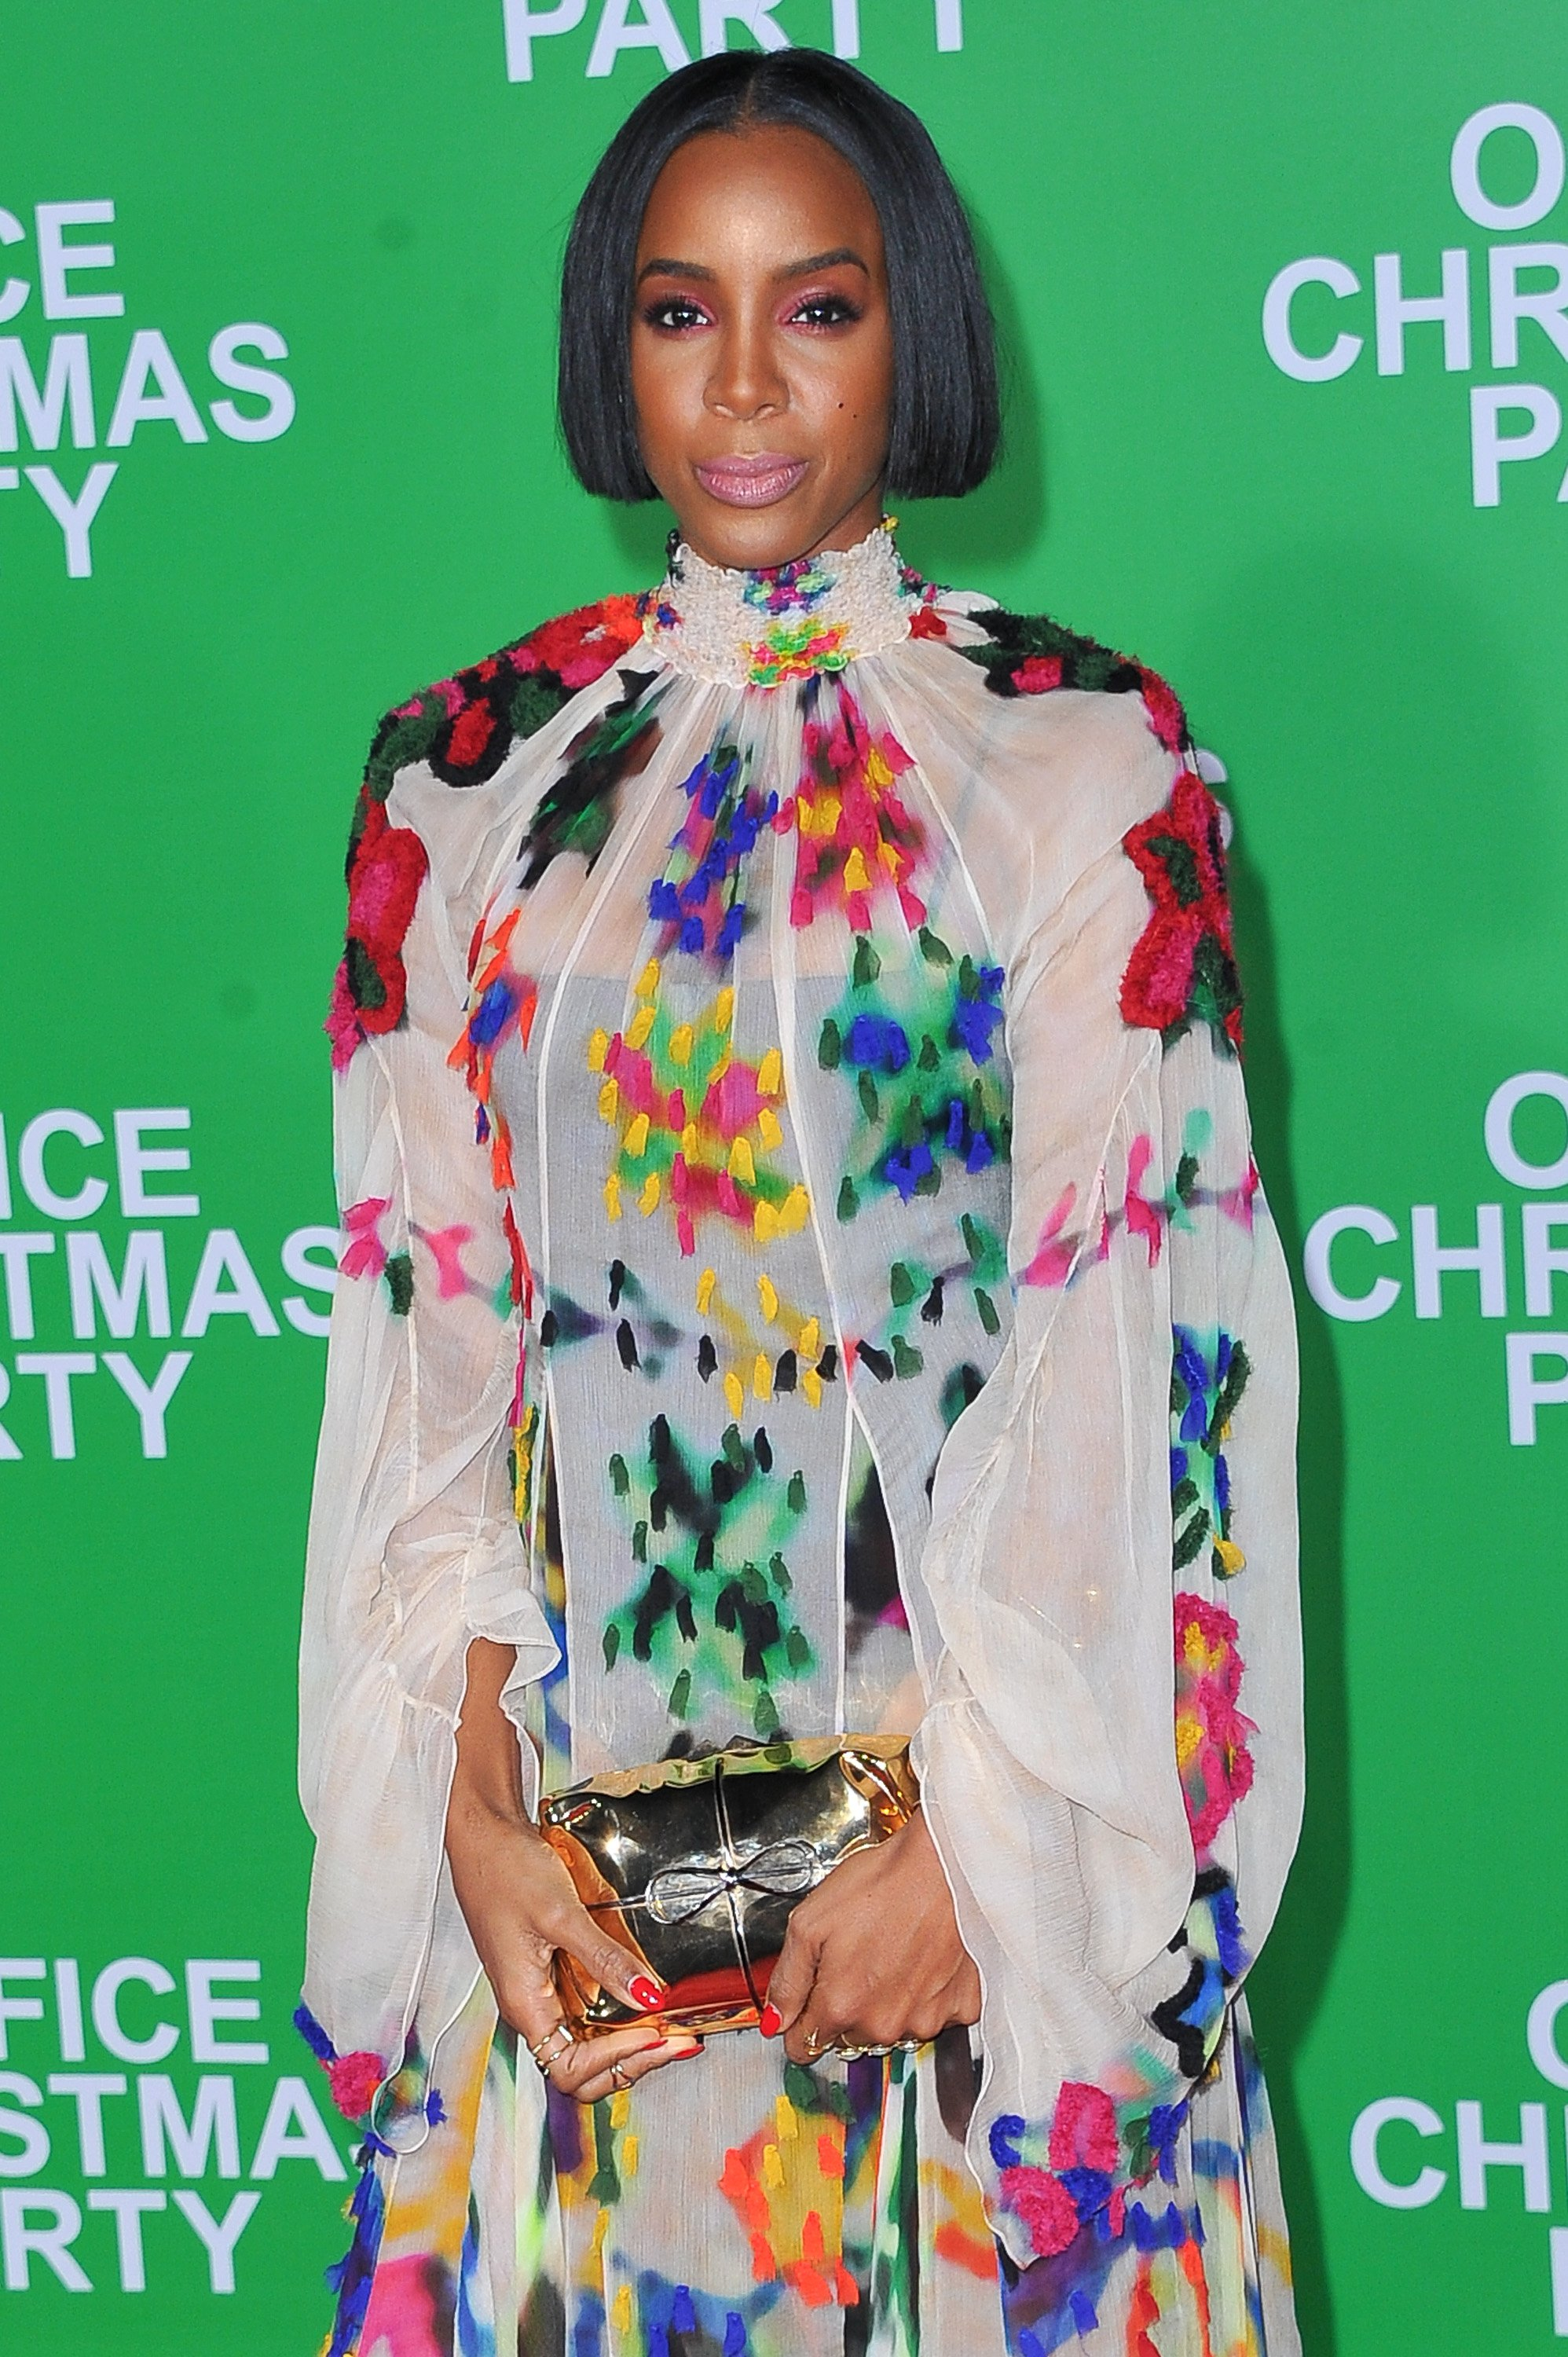 """Kelly Rowland at the Paramount Pictures' """"Office Christmas Party"""" movie premiere on December 7, 2016 in Westwood, California.   Photo: Getty Images"""